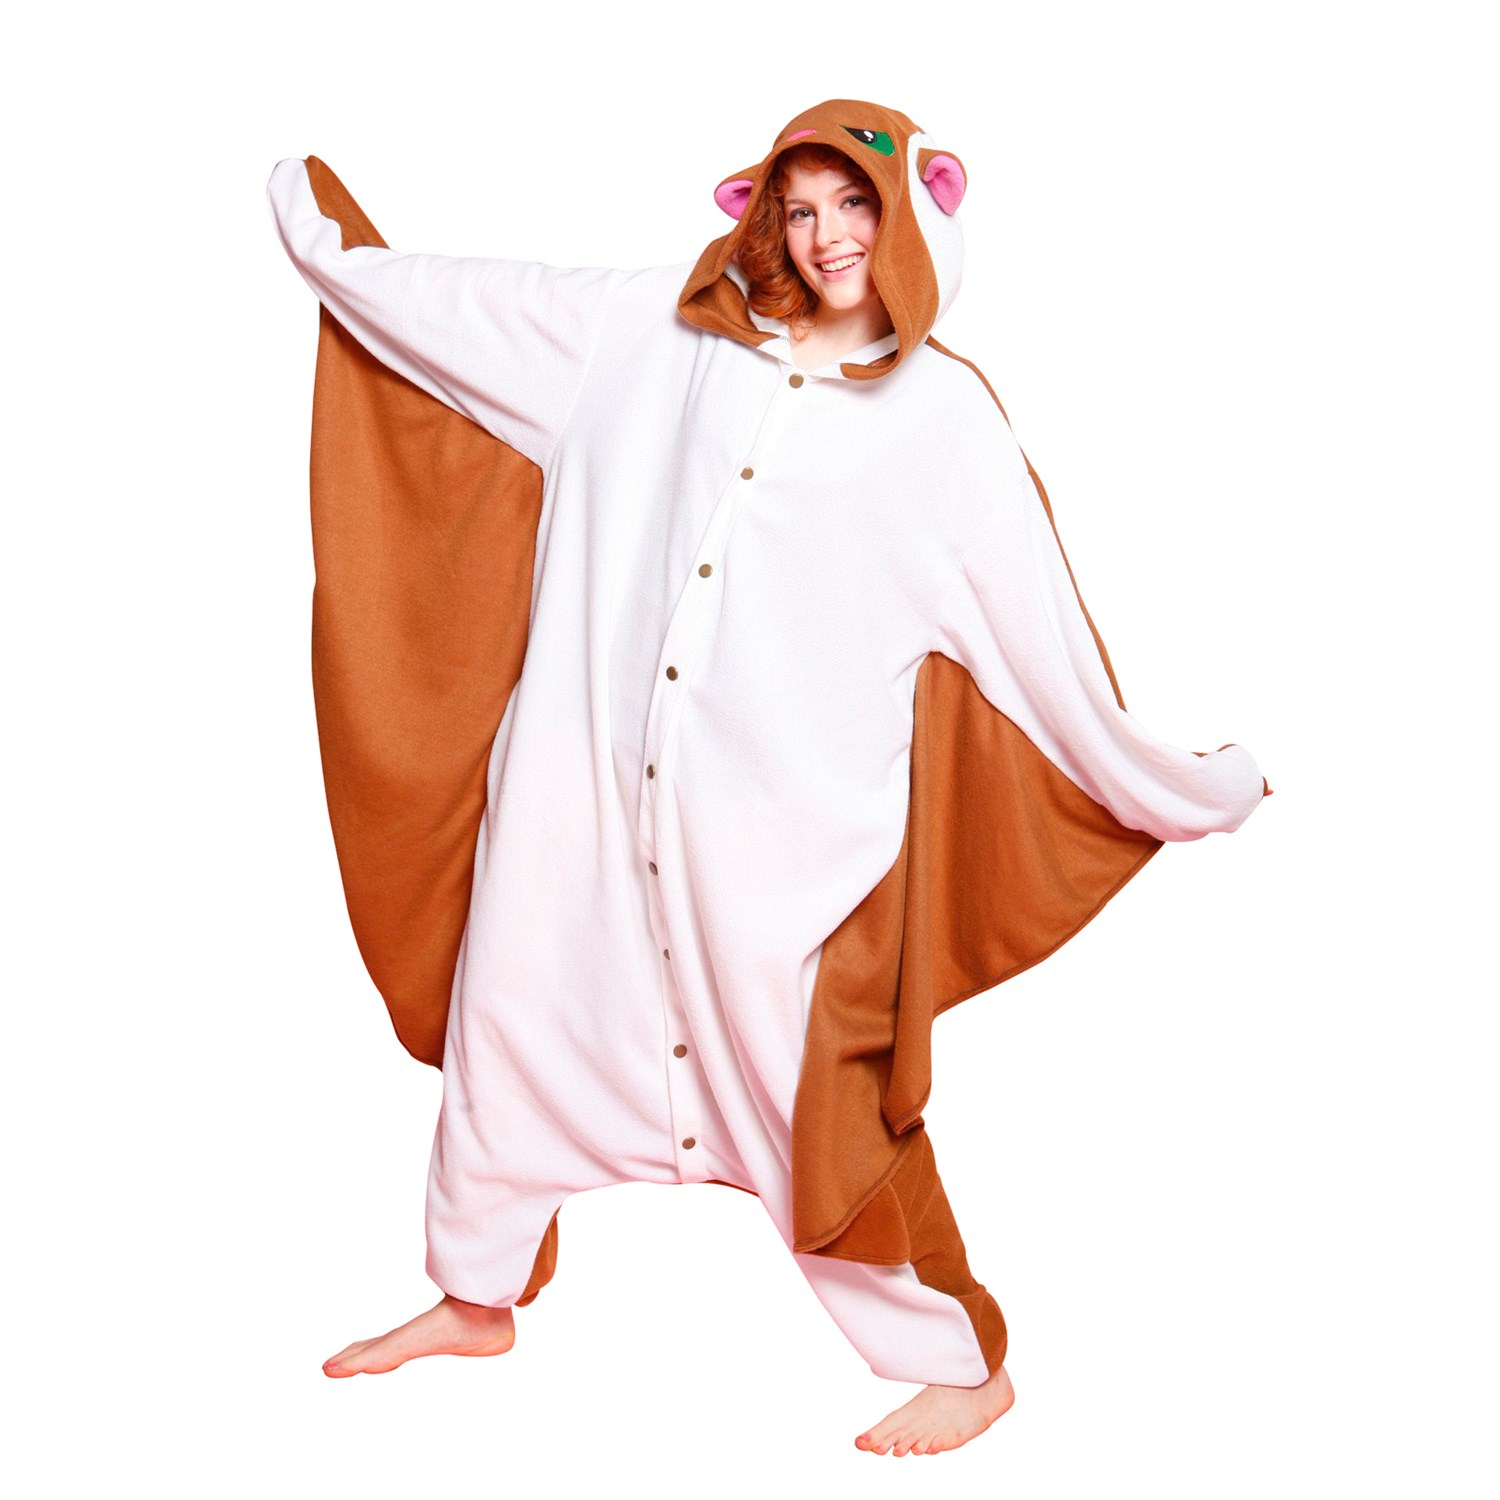 Bcozy Flying Squirrel Adult Costume Buycostumes Com